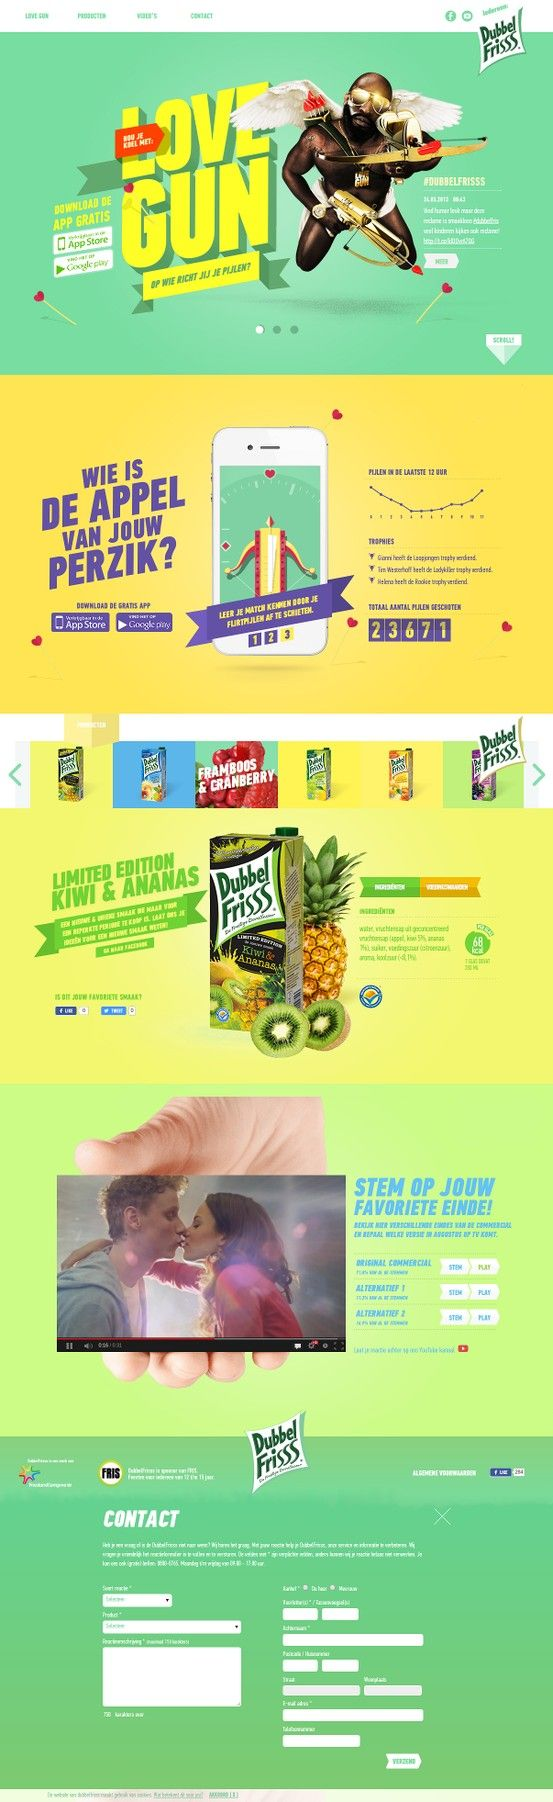 Dubbel Frisss colorful responsive web design